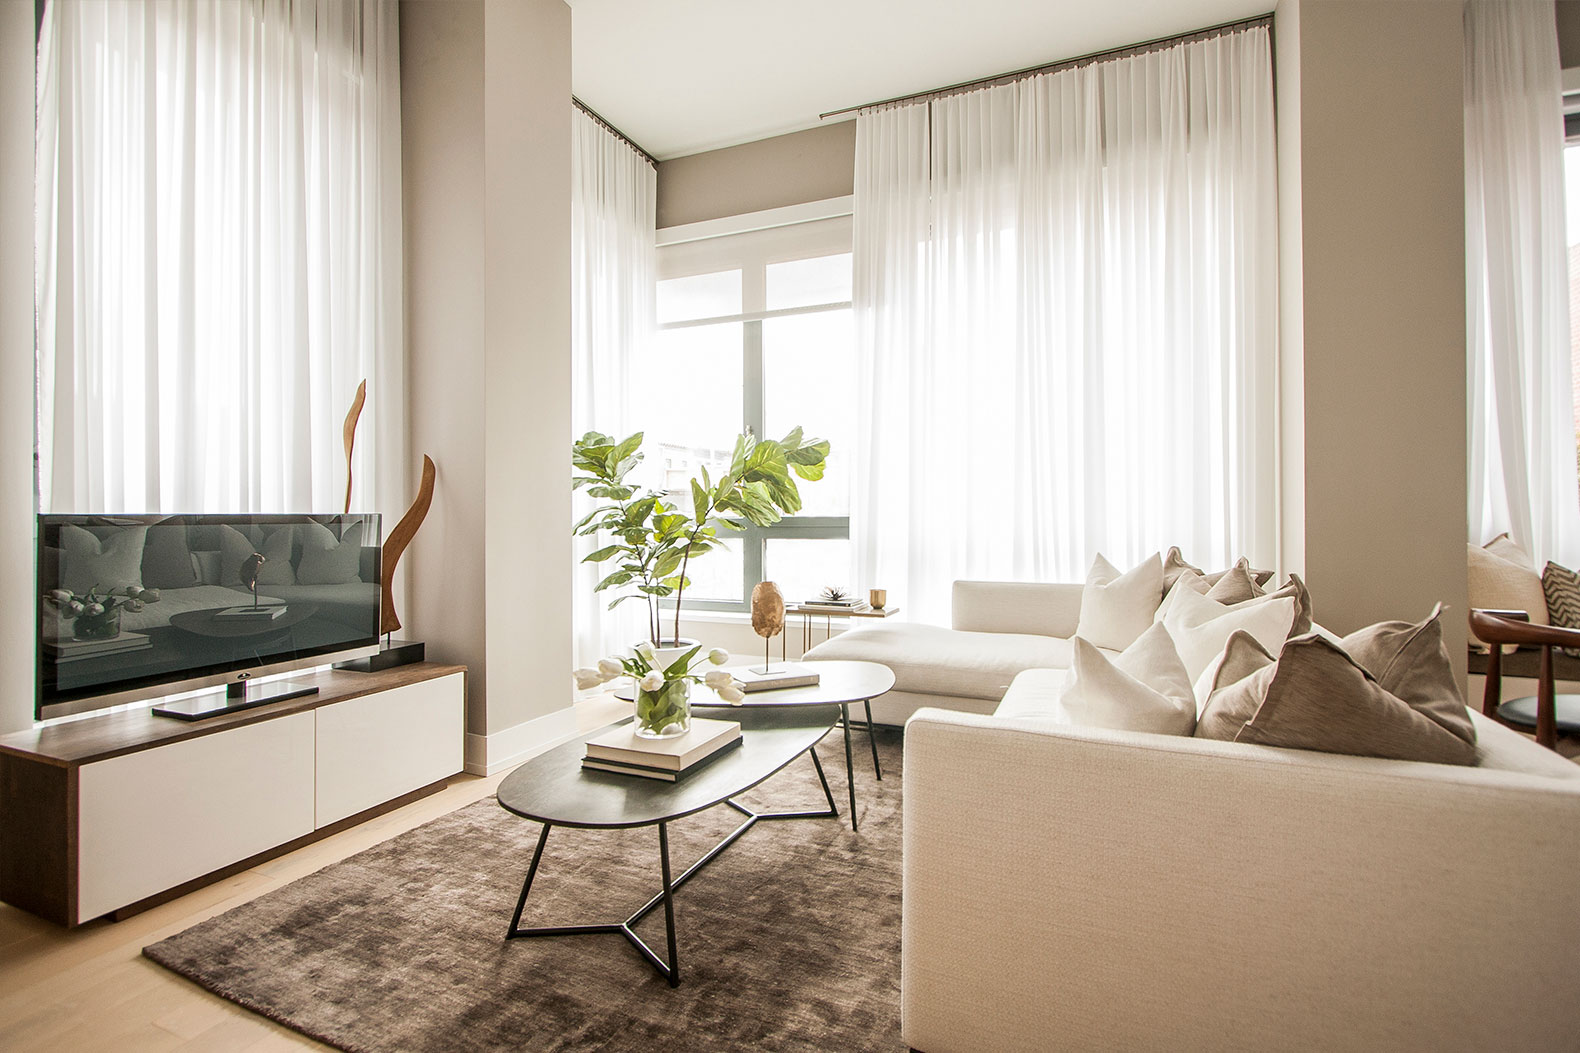 Sneak a peek inside the beautiful new model apartment at for New model apartment